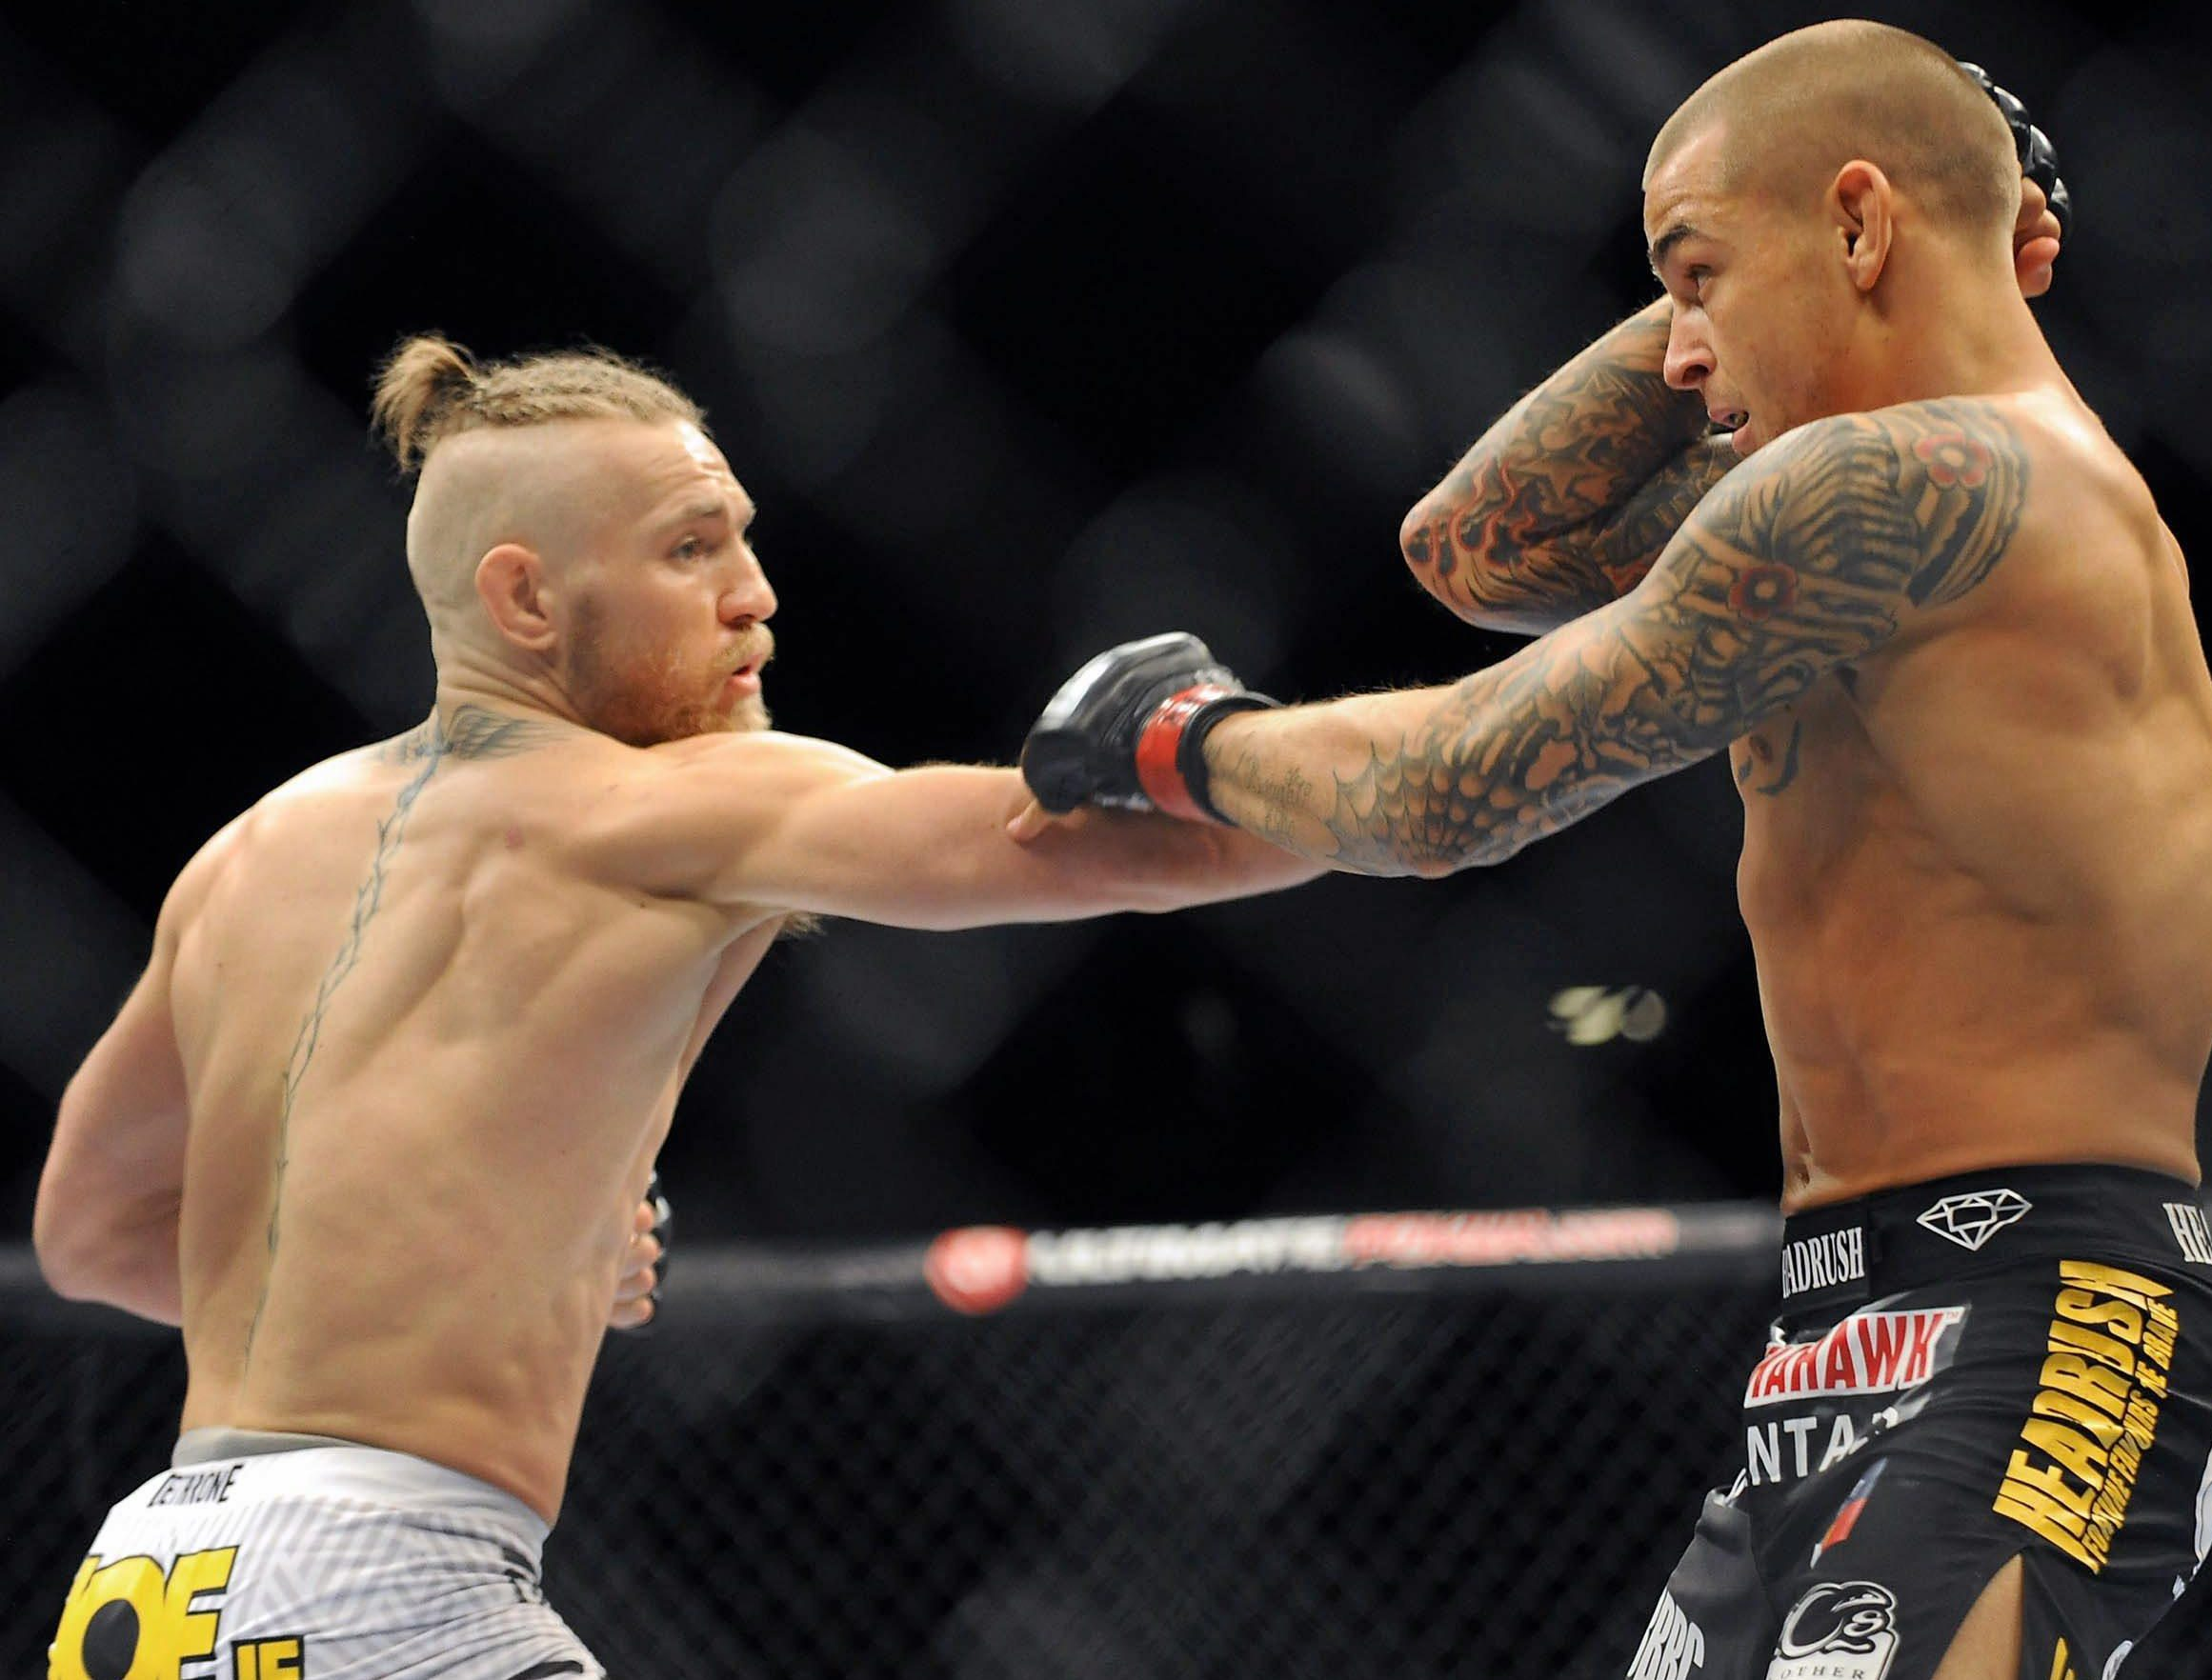 Poirier came up short against McGregor in 2014 after being stopped in the first round